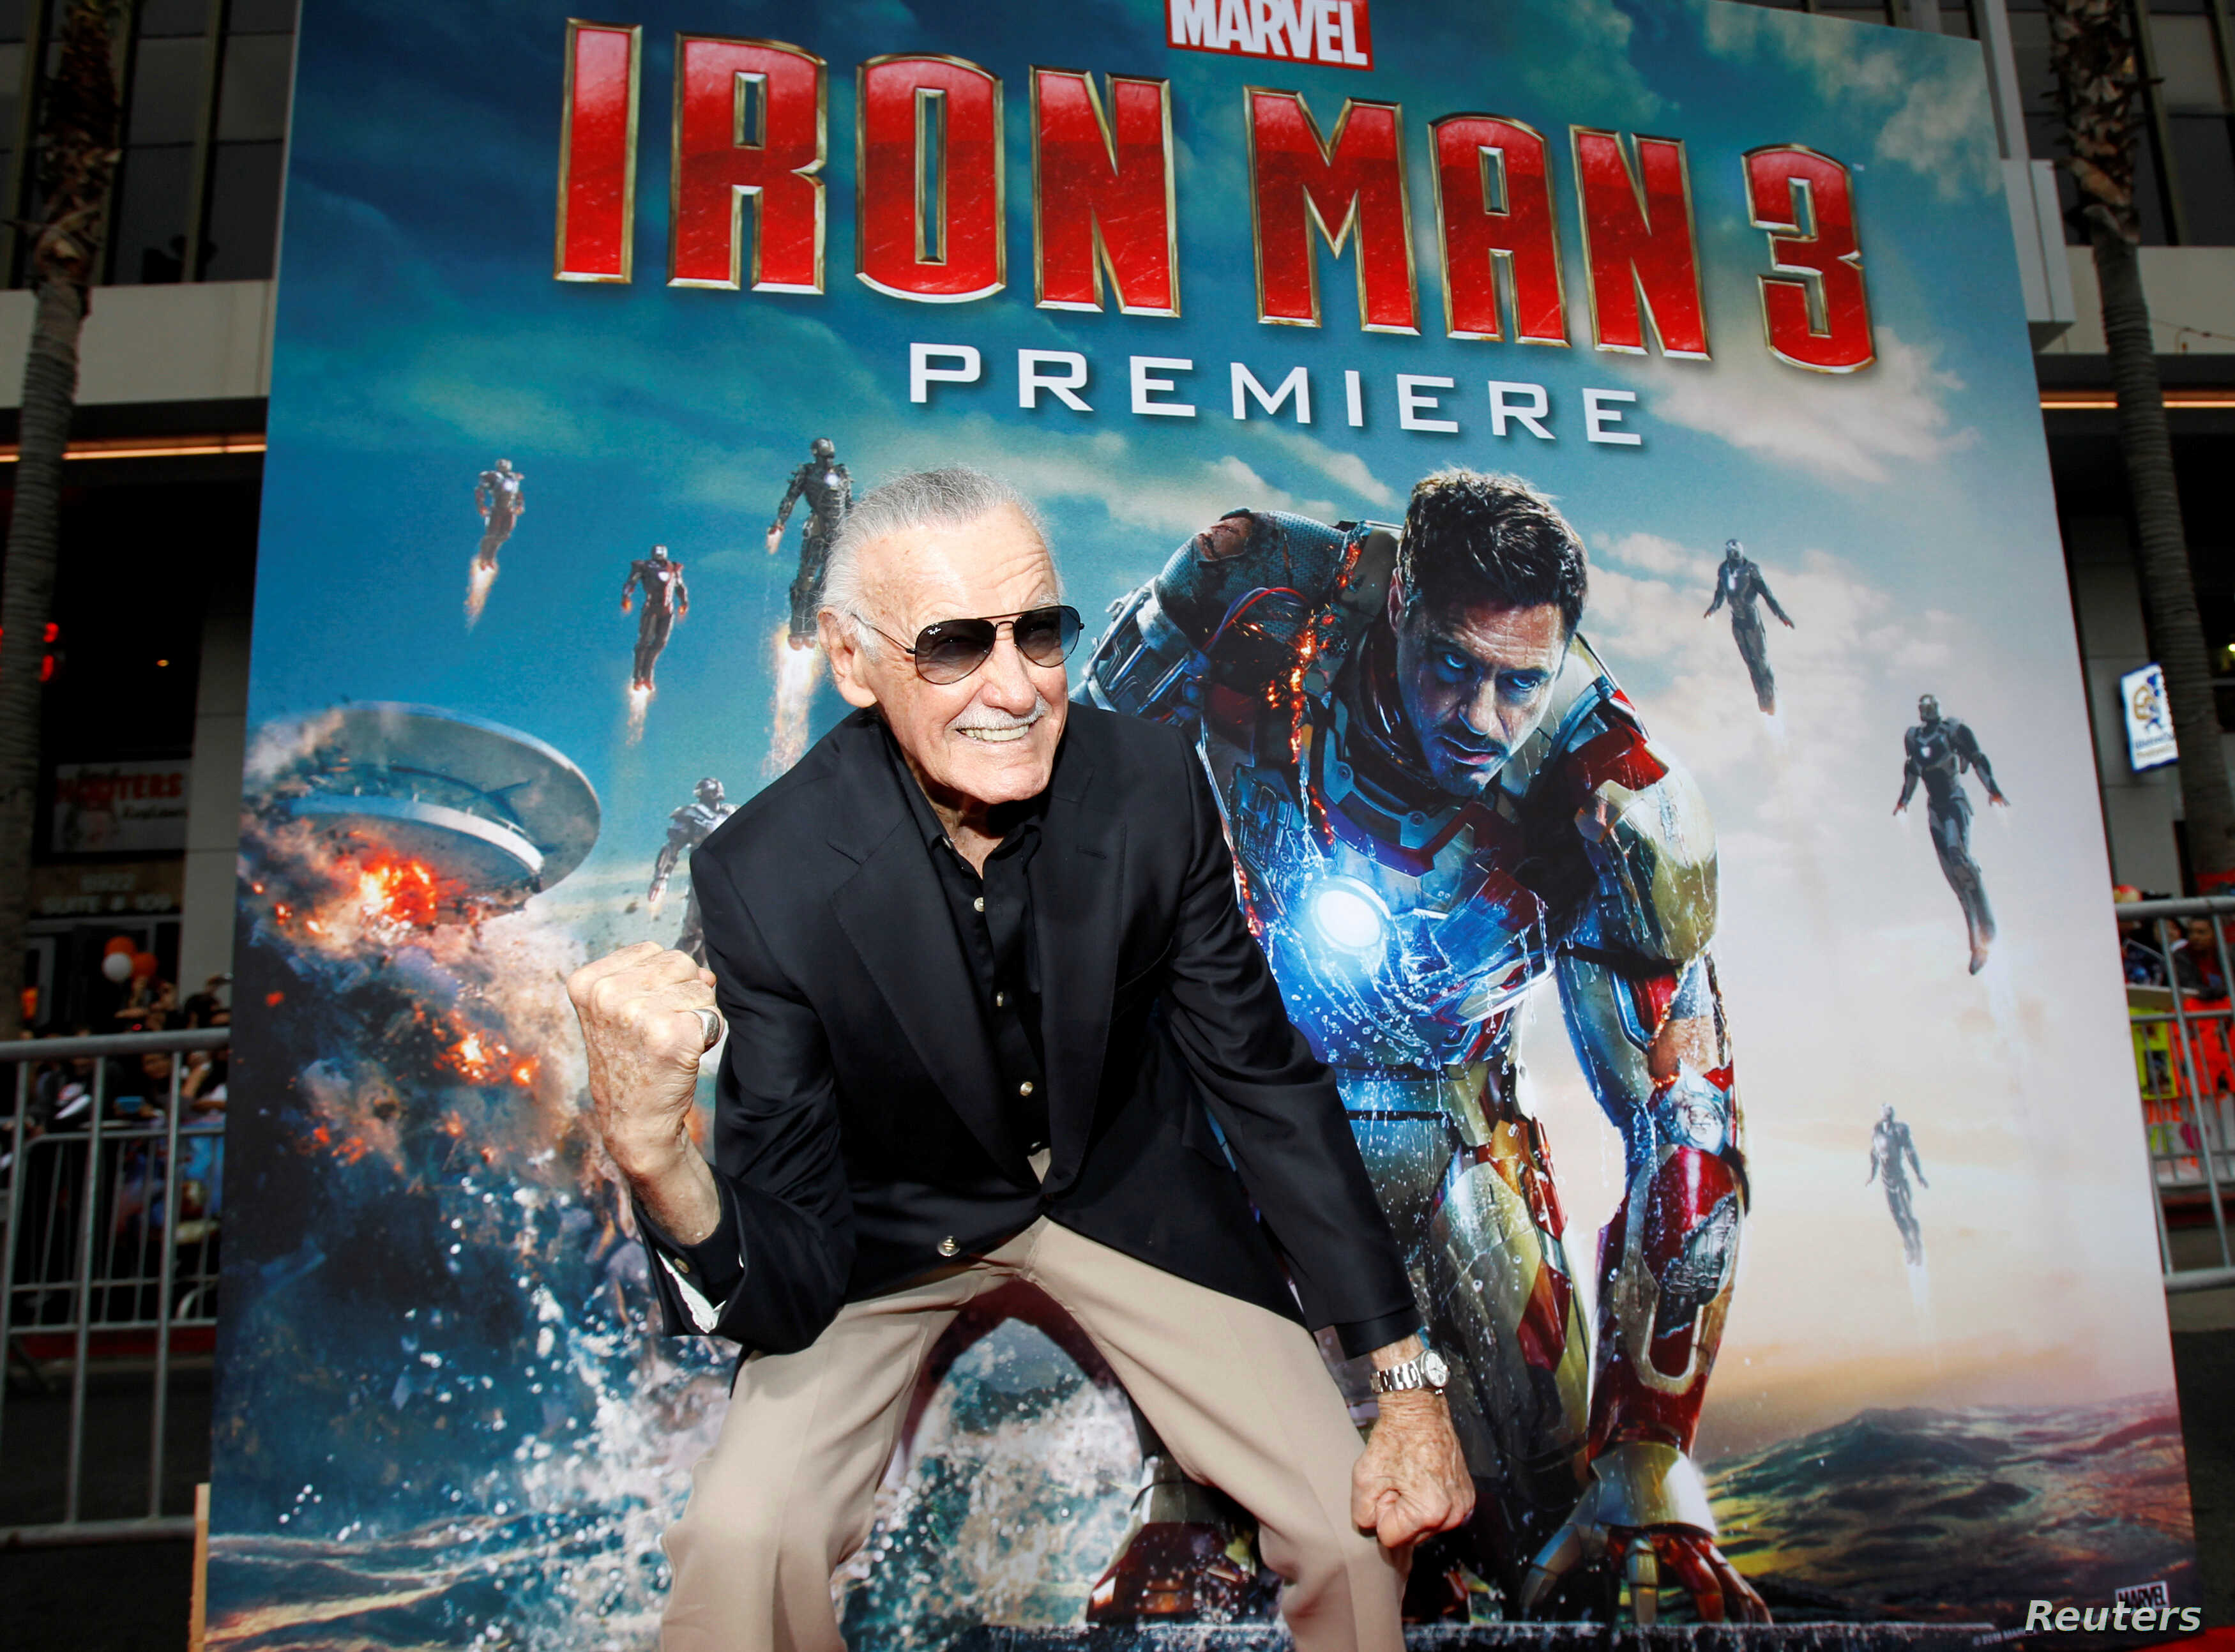 """FILE PHOTO: Stan Lee gestures as he poses at the premiere of """"Iron Man 3"""" at El Capitan Theater in Hollywood, California, U.S., April 24, 2013."""